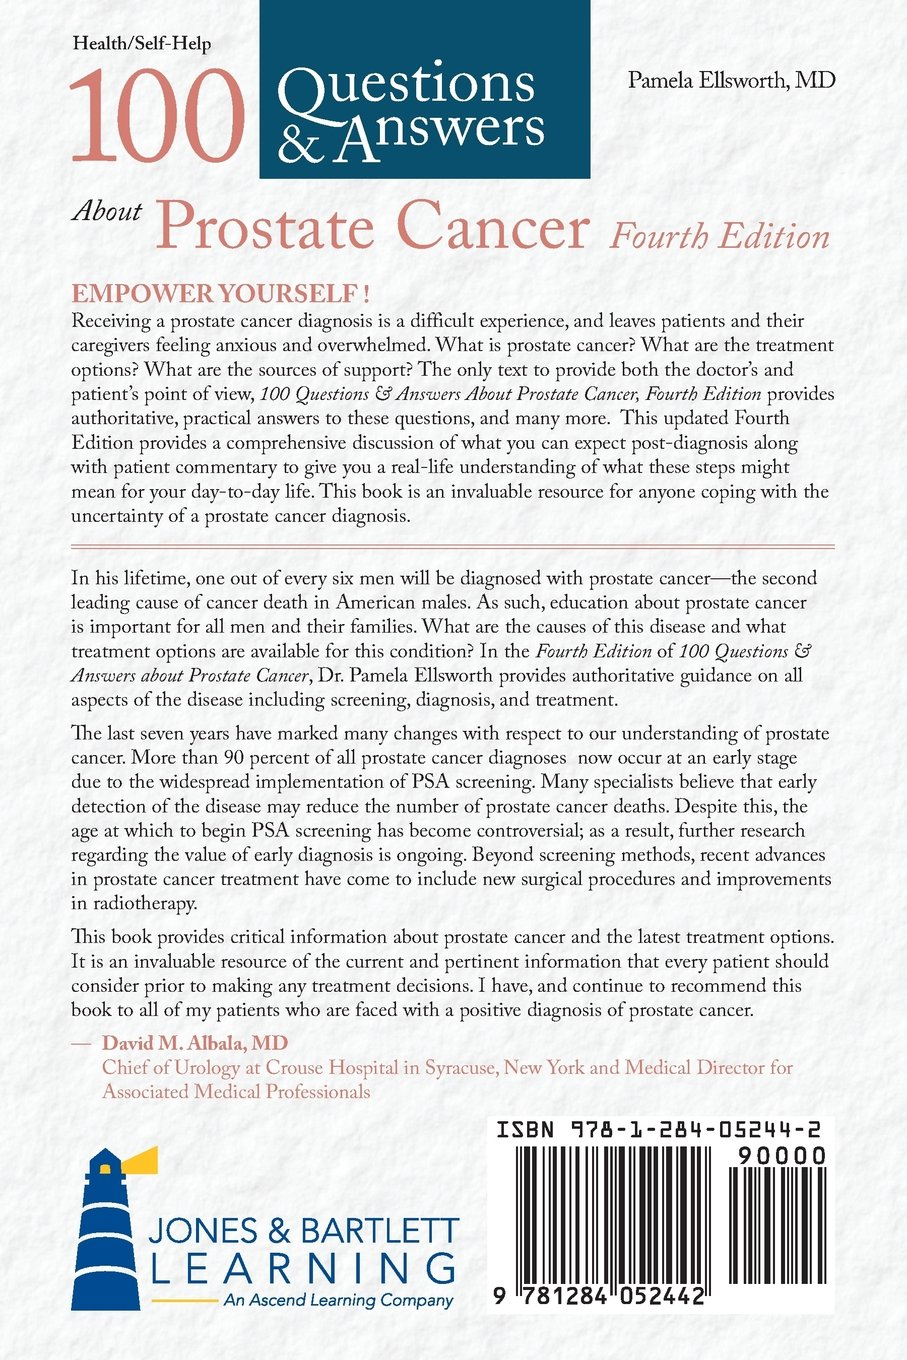 100 Questions & Answers About Prostate Cancer: Amazon.co.uk: Pamela  Ellsworth: Books